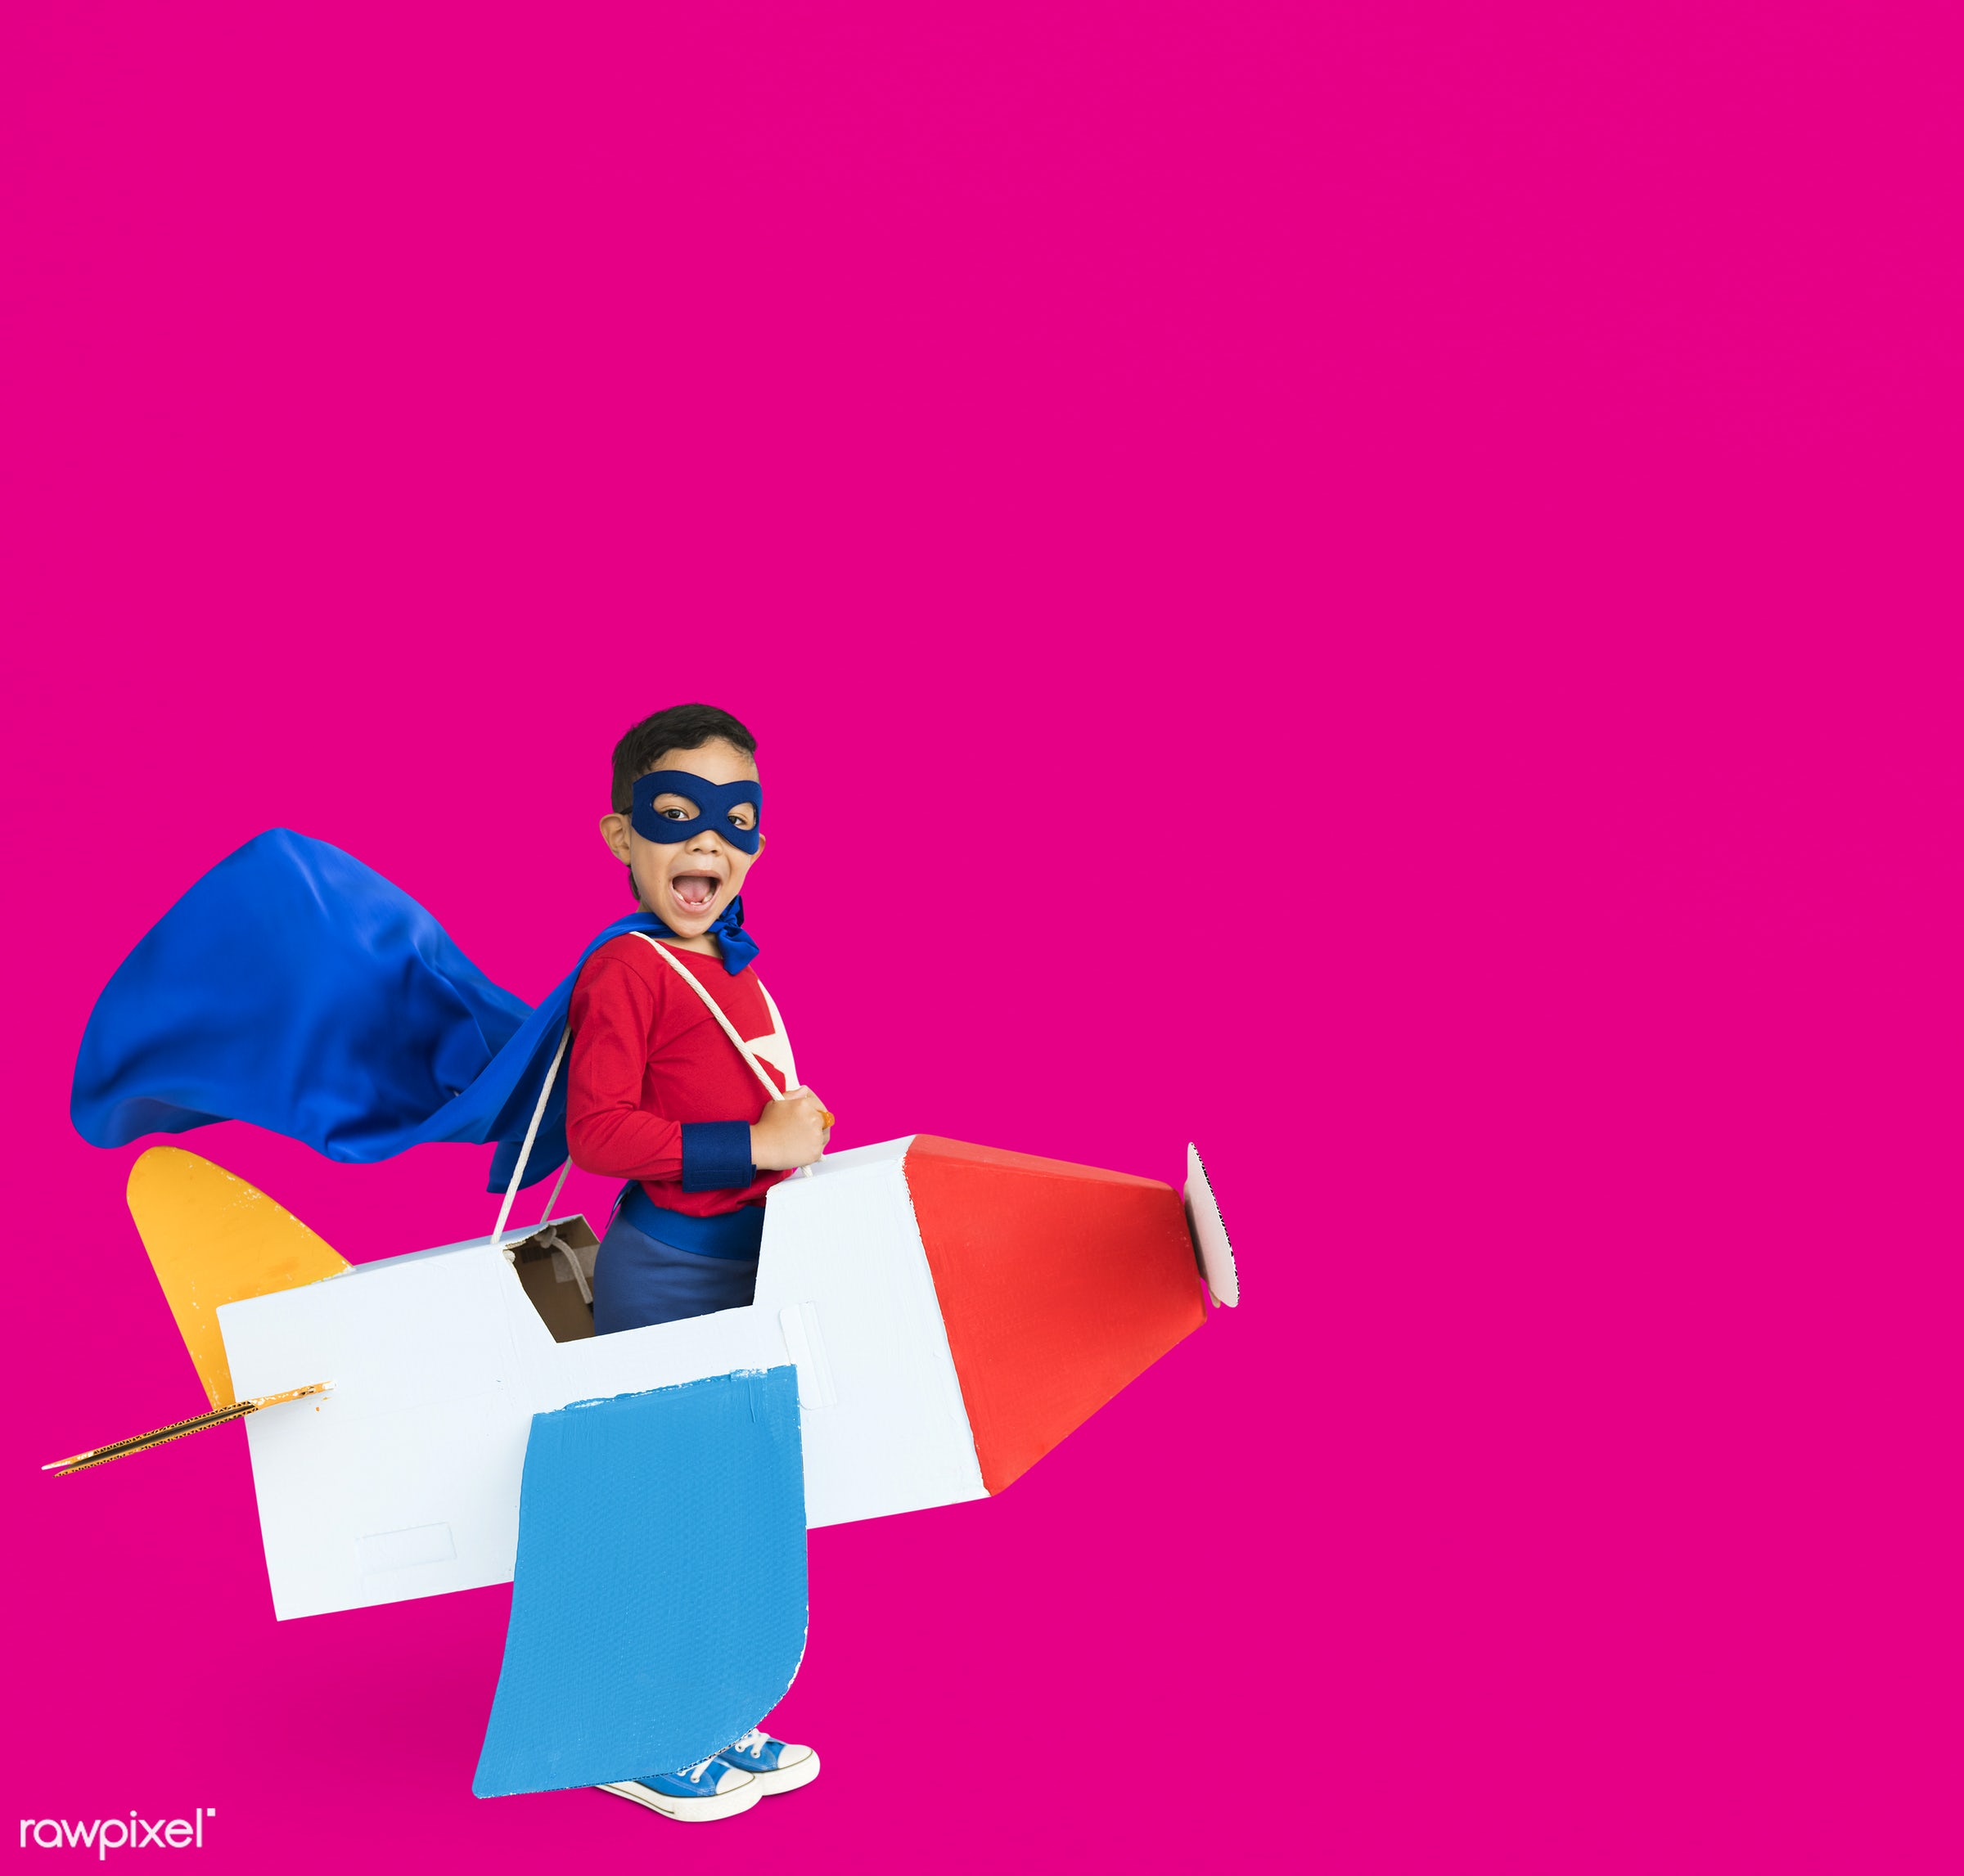 studio, expression, person, mask, people, kid, solo, pink, childhood, smile, cheerful, smiling, isolated, airplane,...